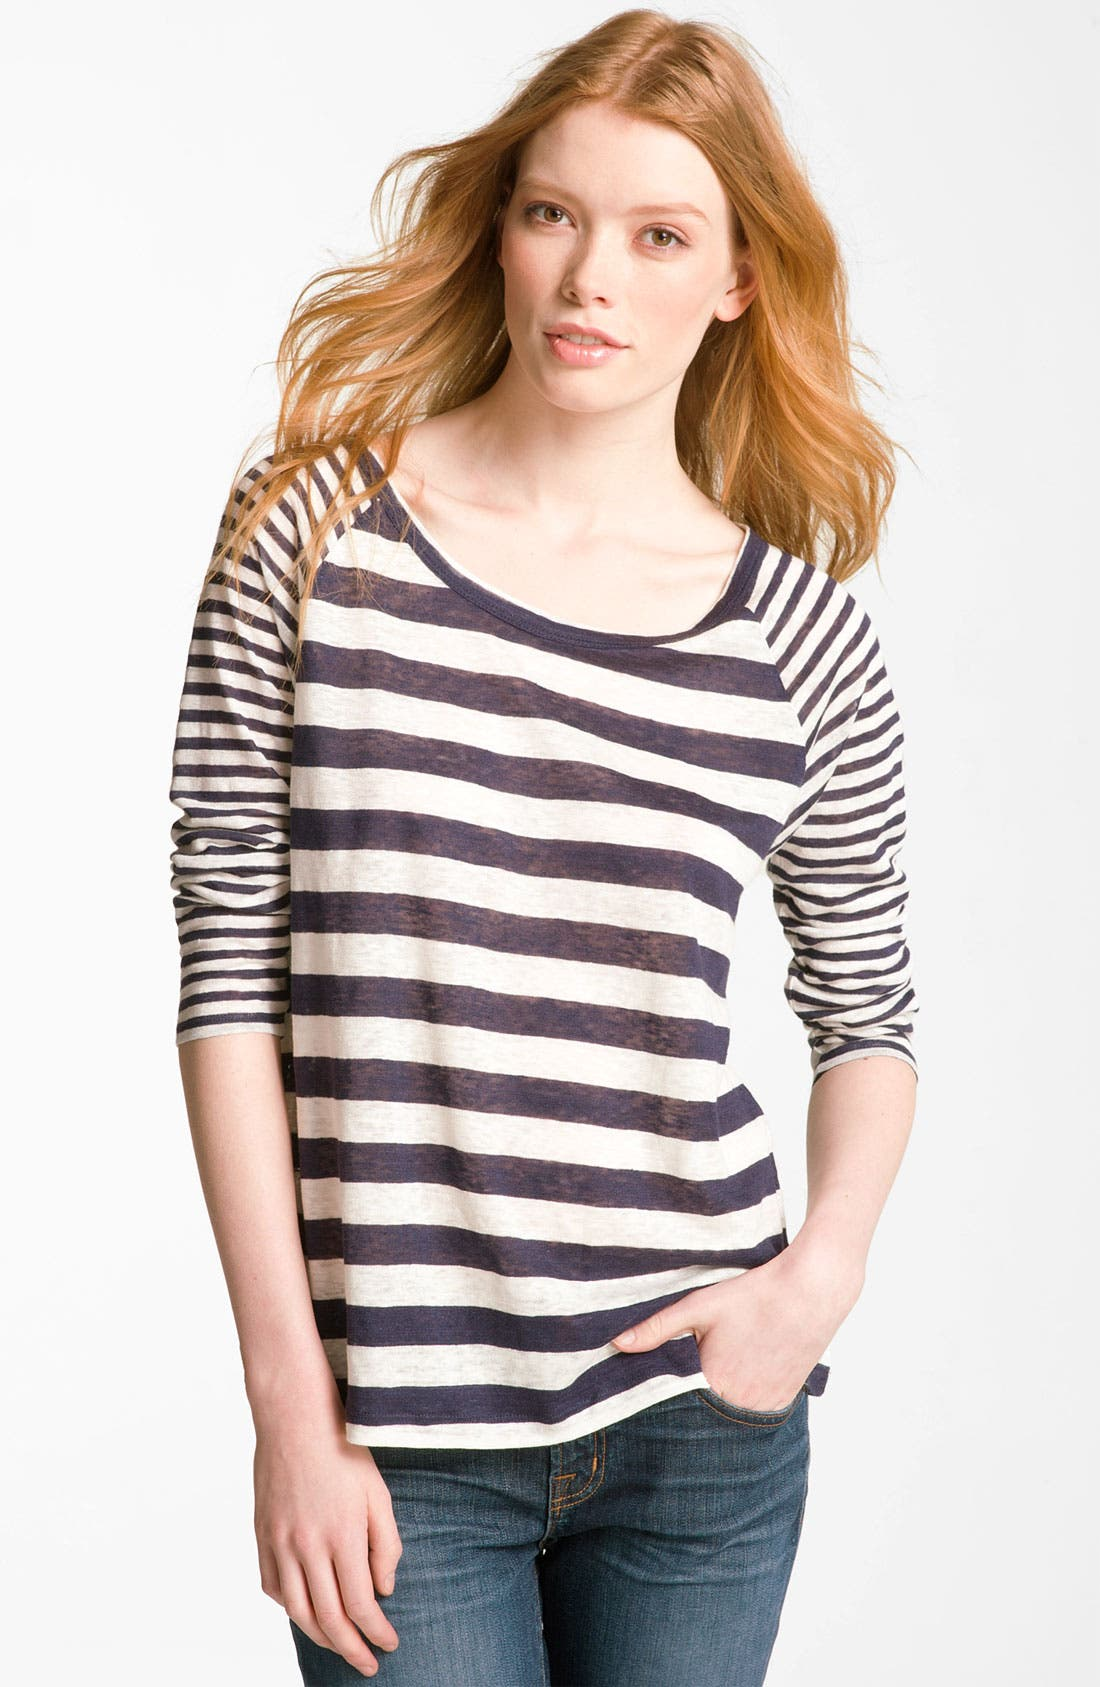 Alternate Image 1 Selected - Joie 'Gloriosa' Sheer Stripe Raglan Top